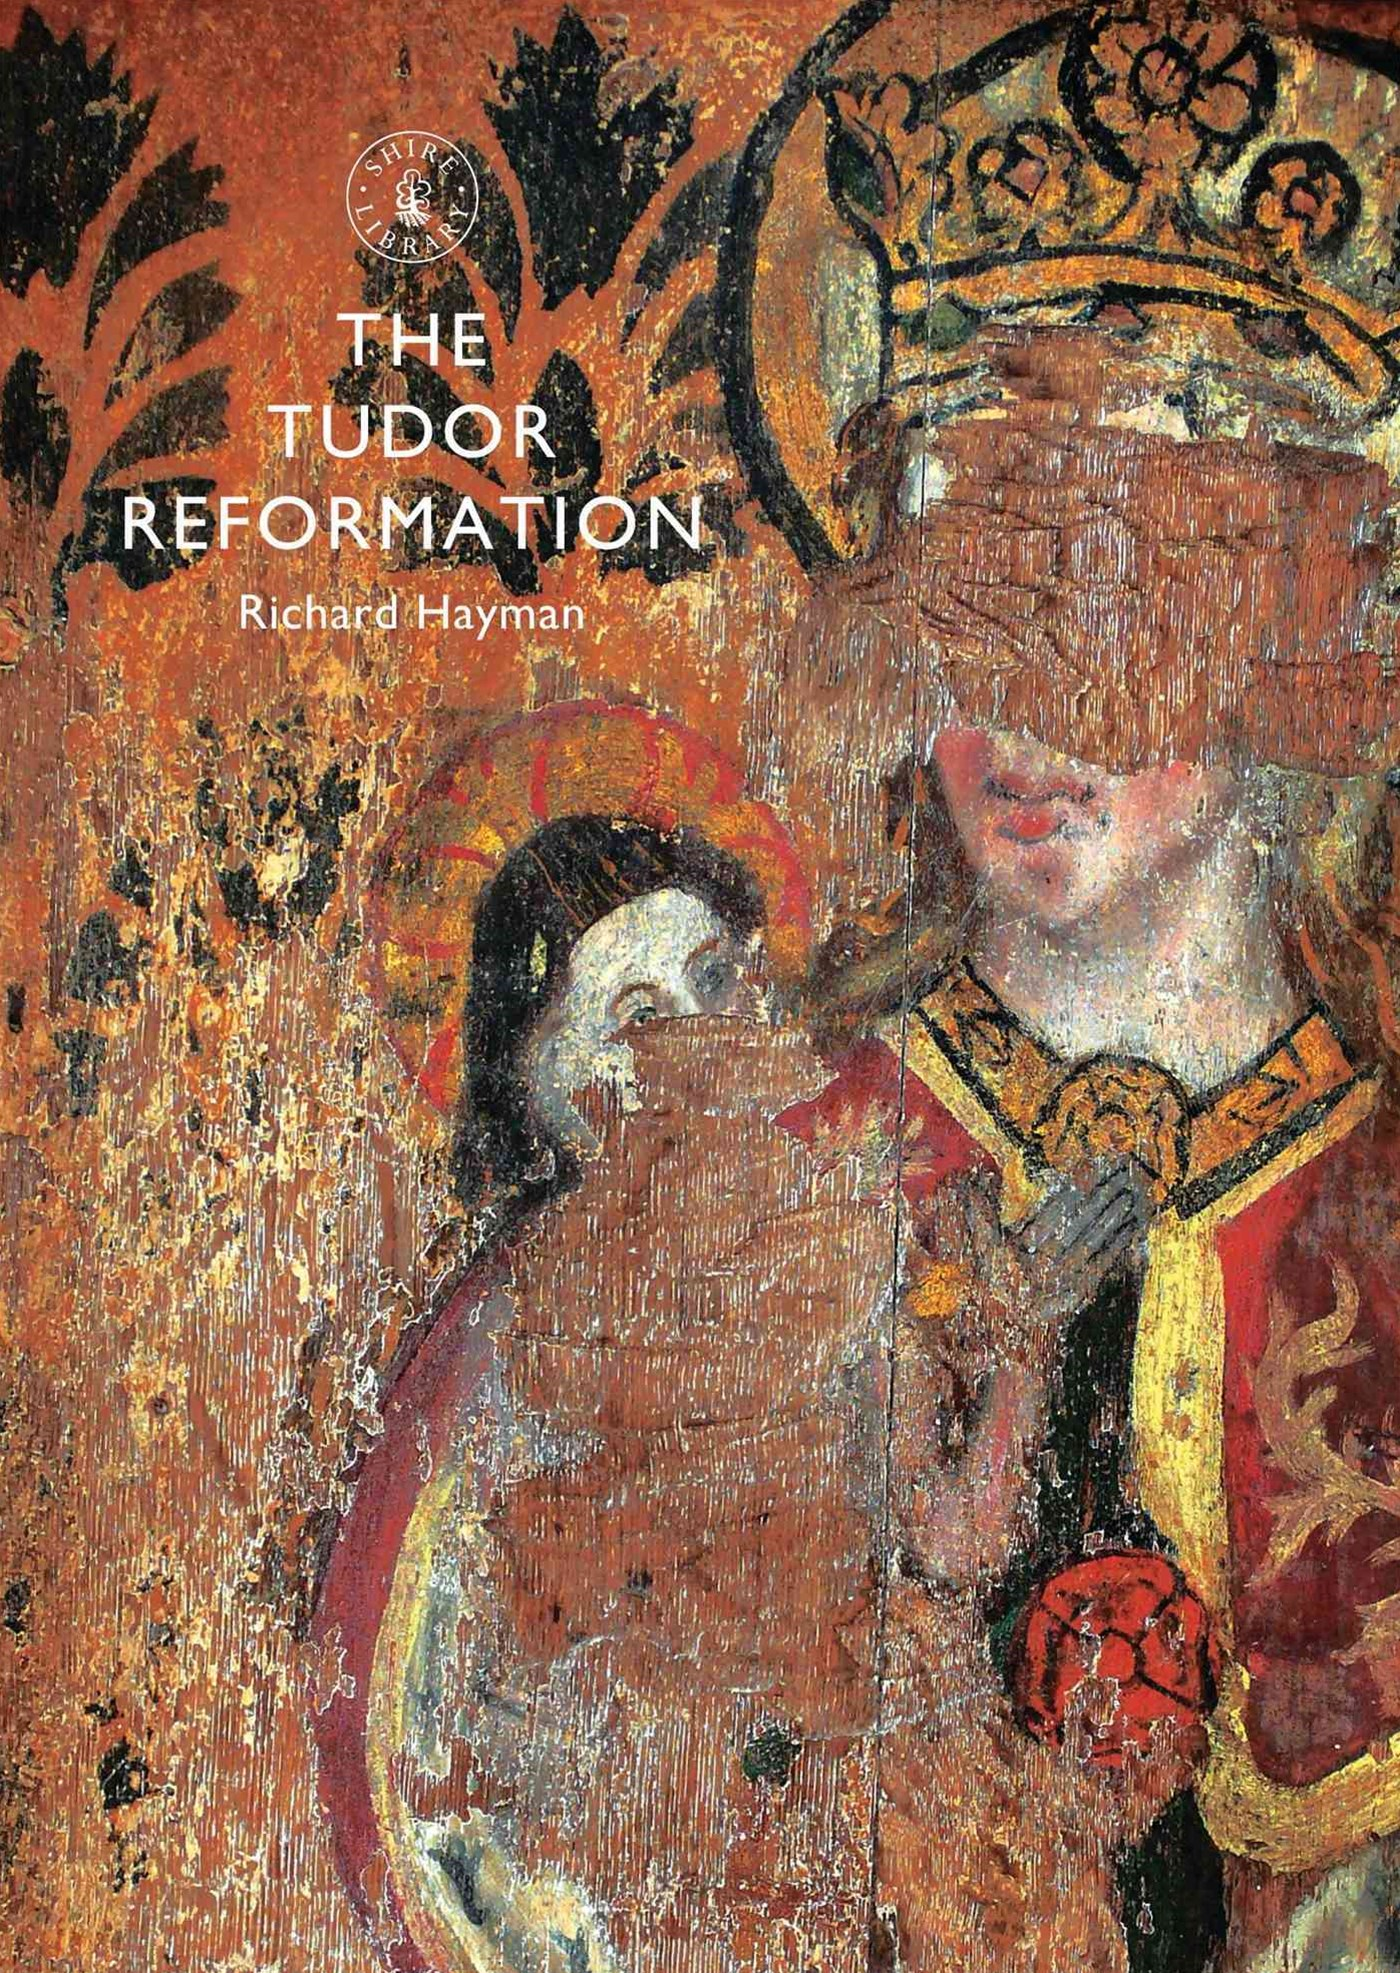 The Tudor Reformation